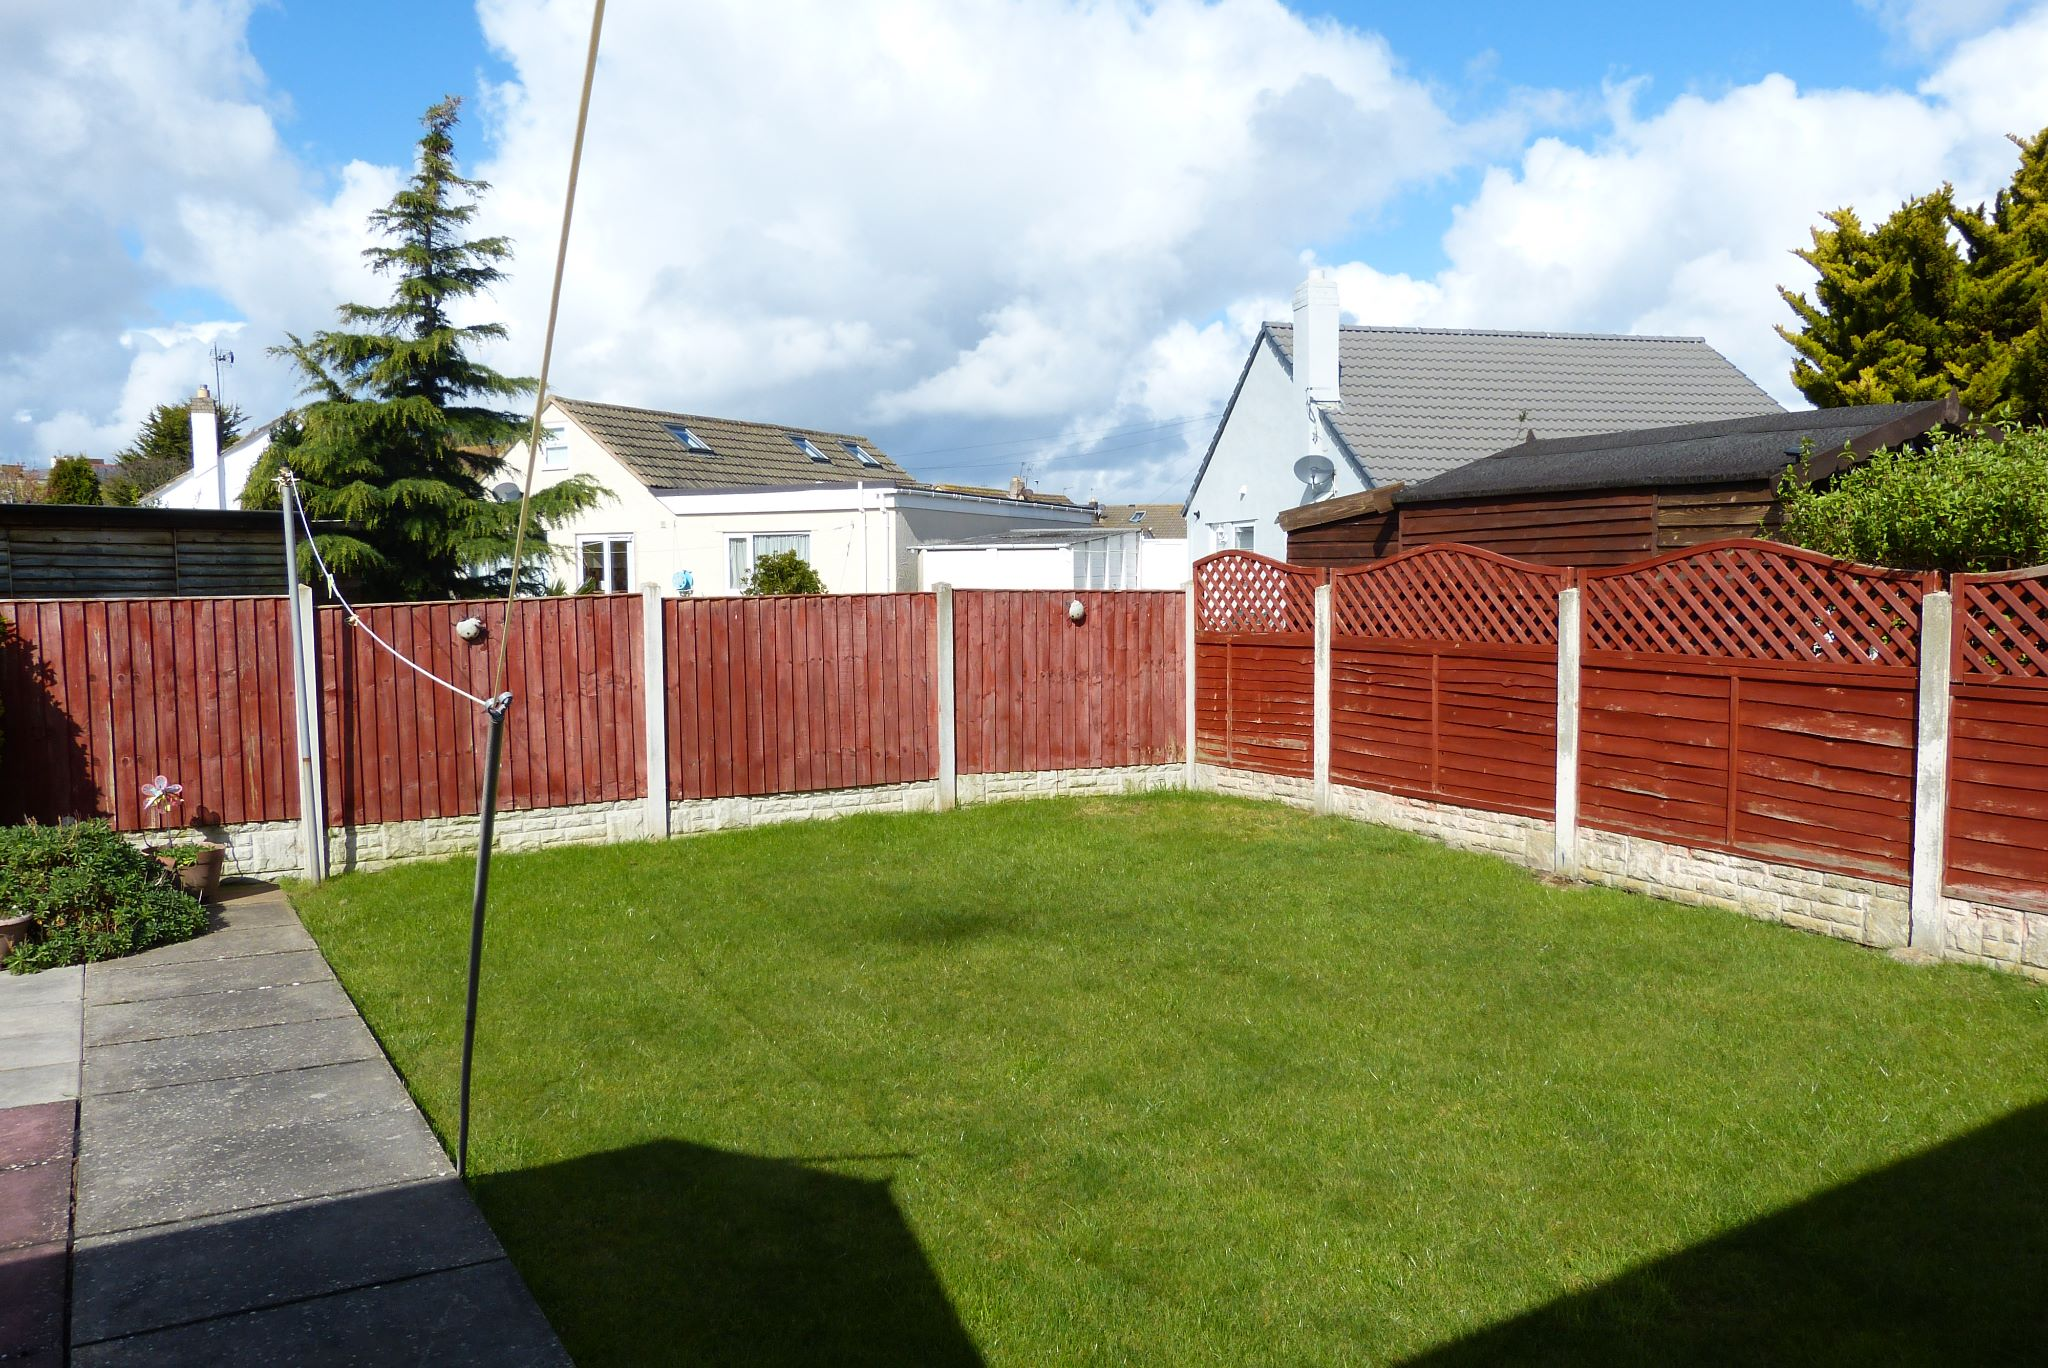 2 bedroom semi-detached bungalow For Sale in Abergele - Photograph 9